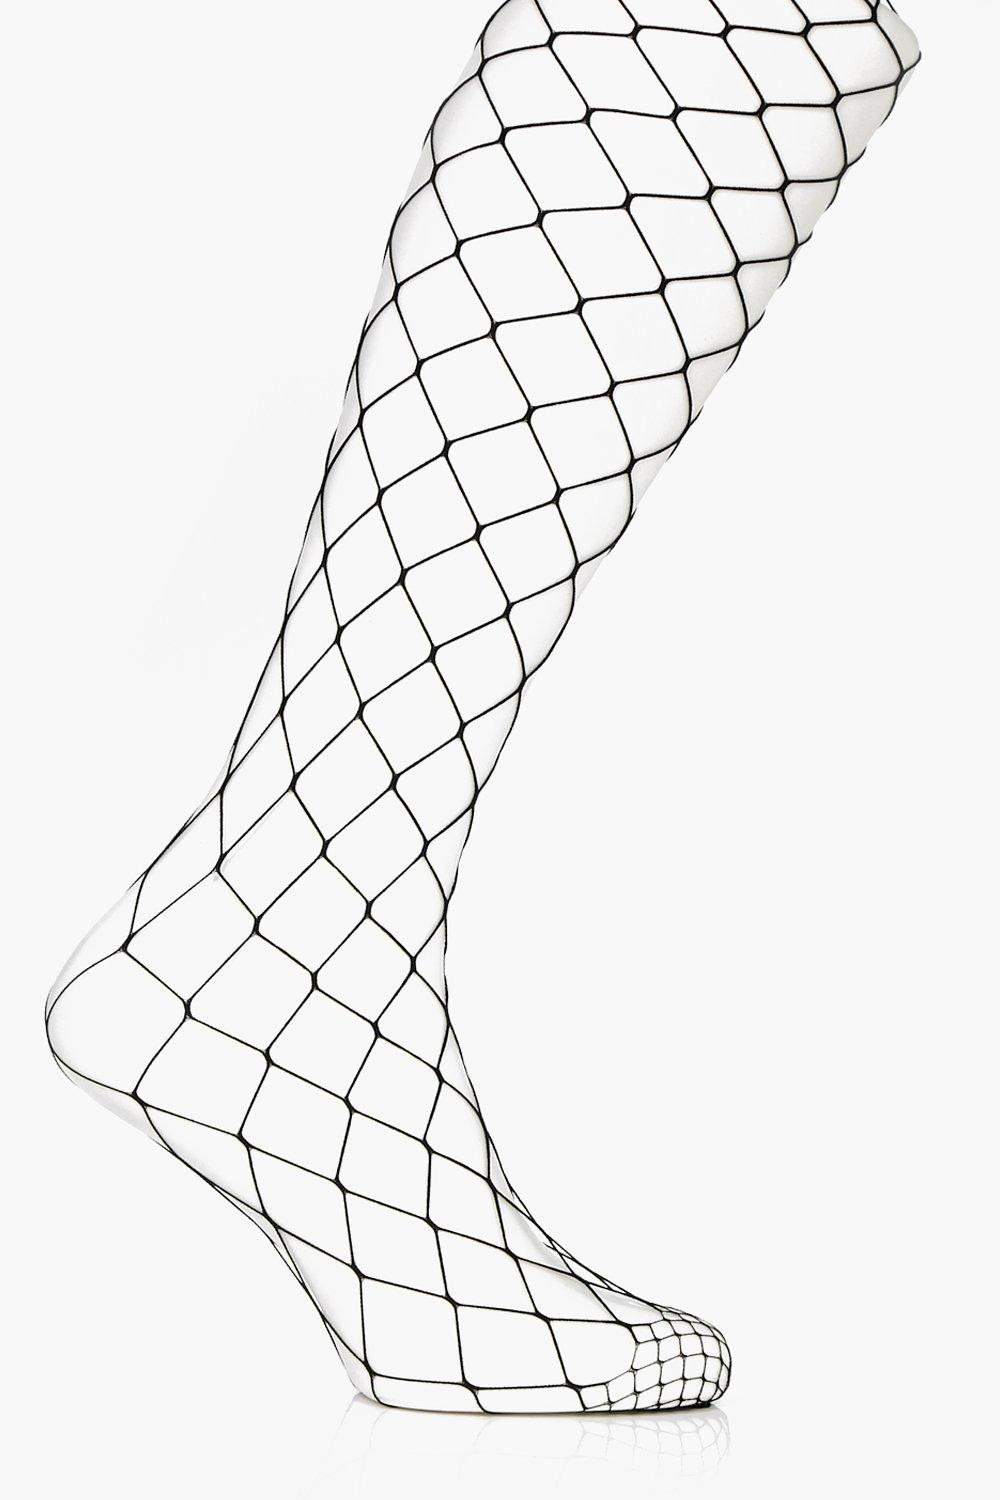 Julia Oversized Fishnet Tight - black - Plus Julia